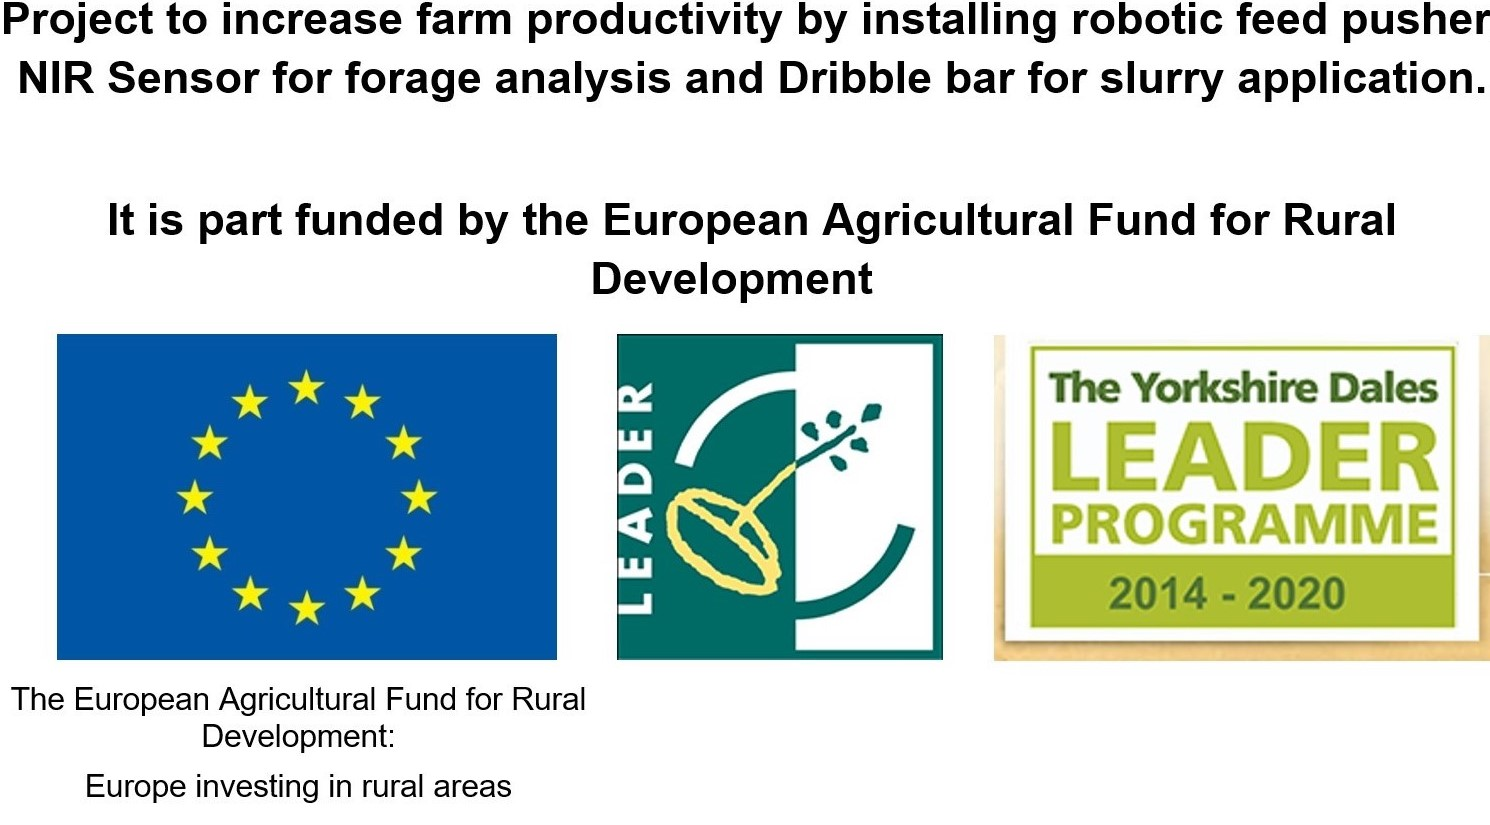 European Aricultural Fund